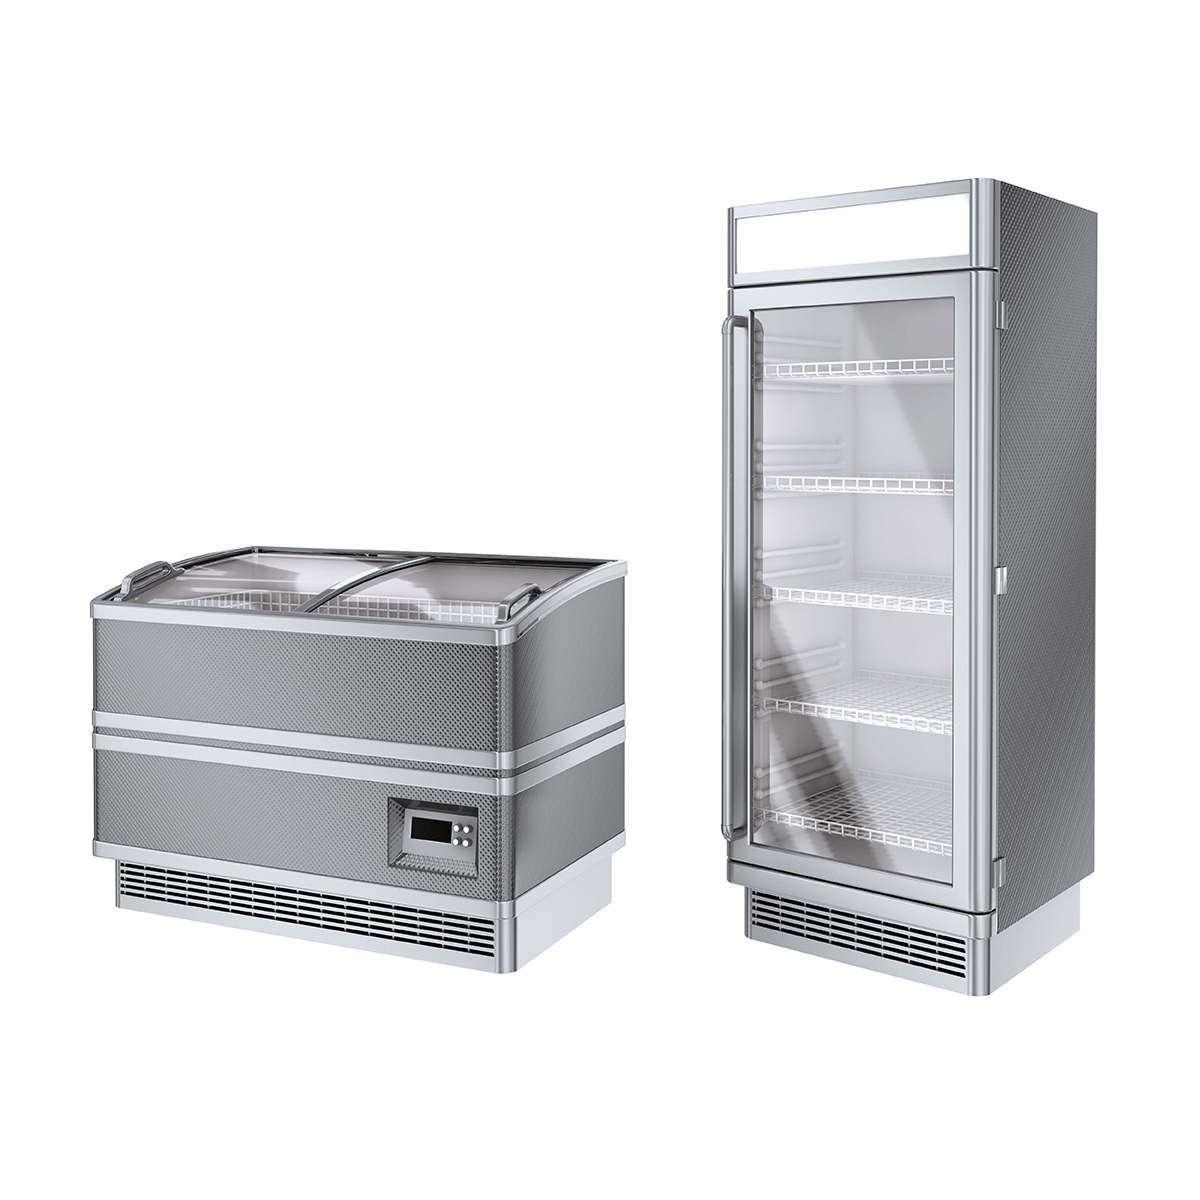 https://arcticrefrigeration.com.au/wp-content/uploads/2020/03/Fridges.png